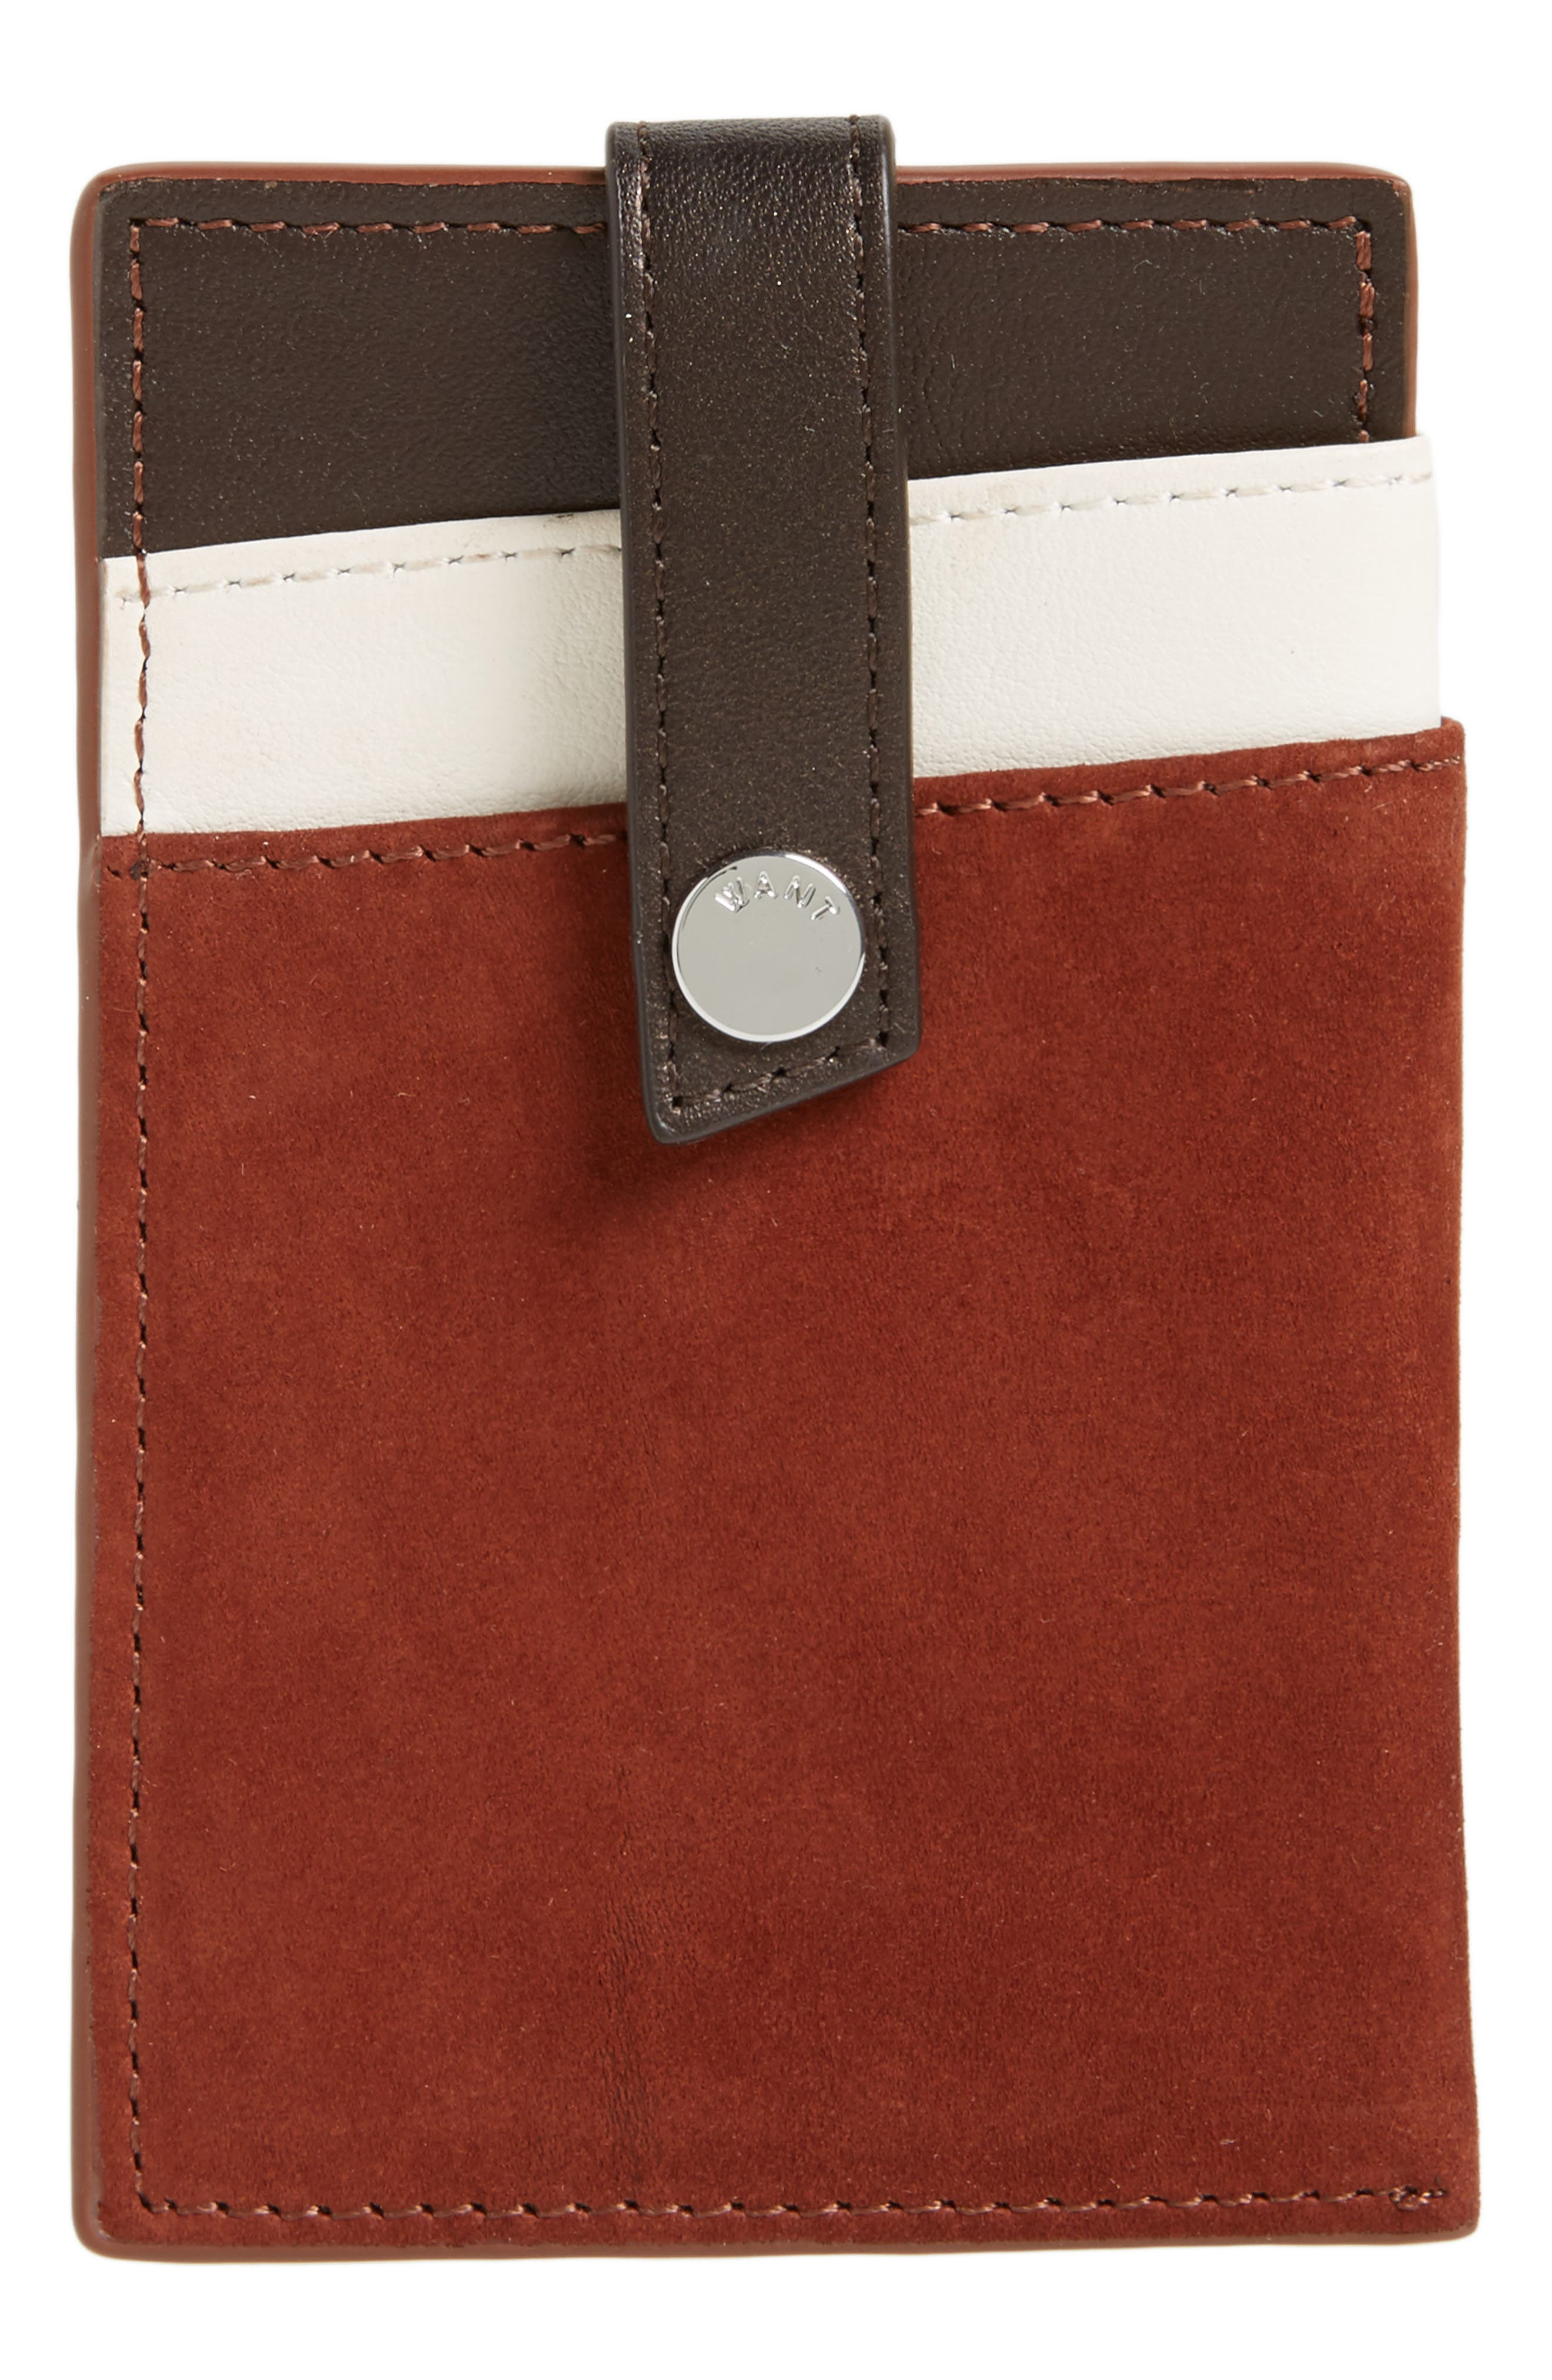 Alternate Image 1 Selected - WANT LES ESSENTIELS Kennedy Leather Money Clip Card Case